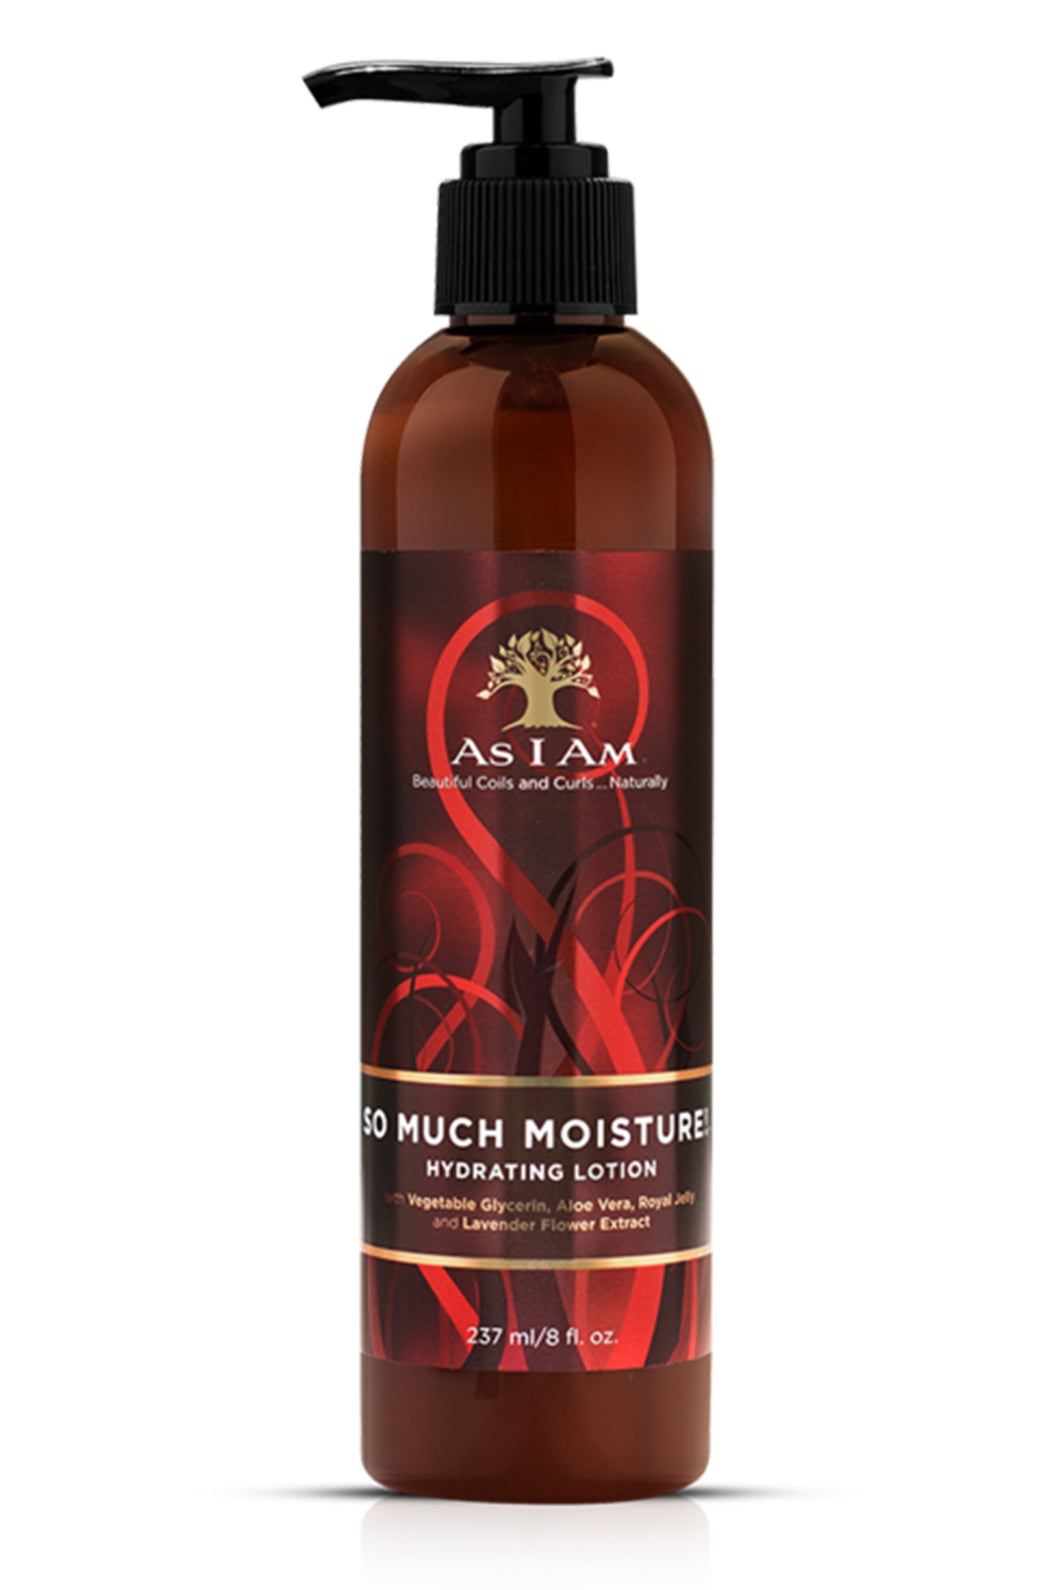 AS I AM So Much Moisture Hydrating Lotion (237ml)